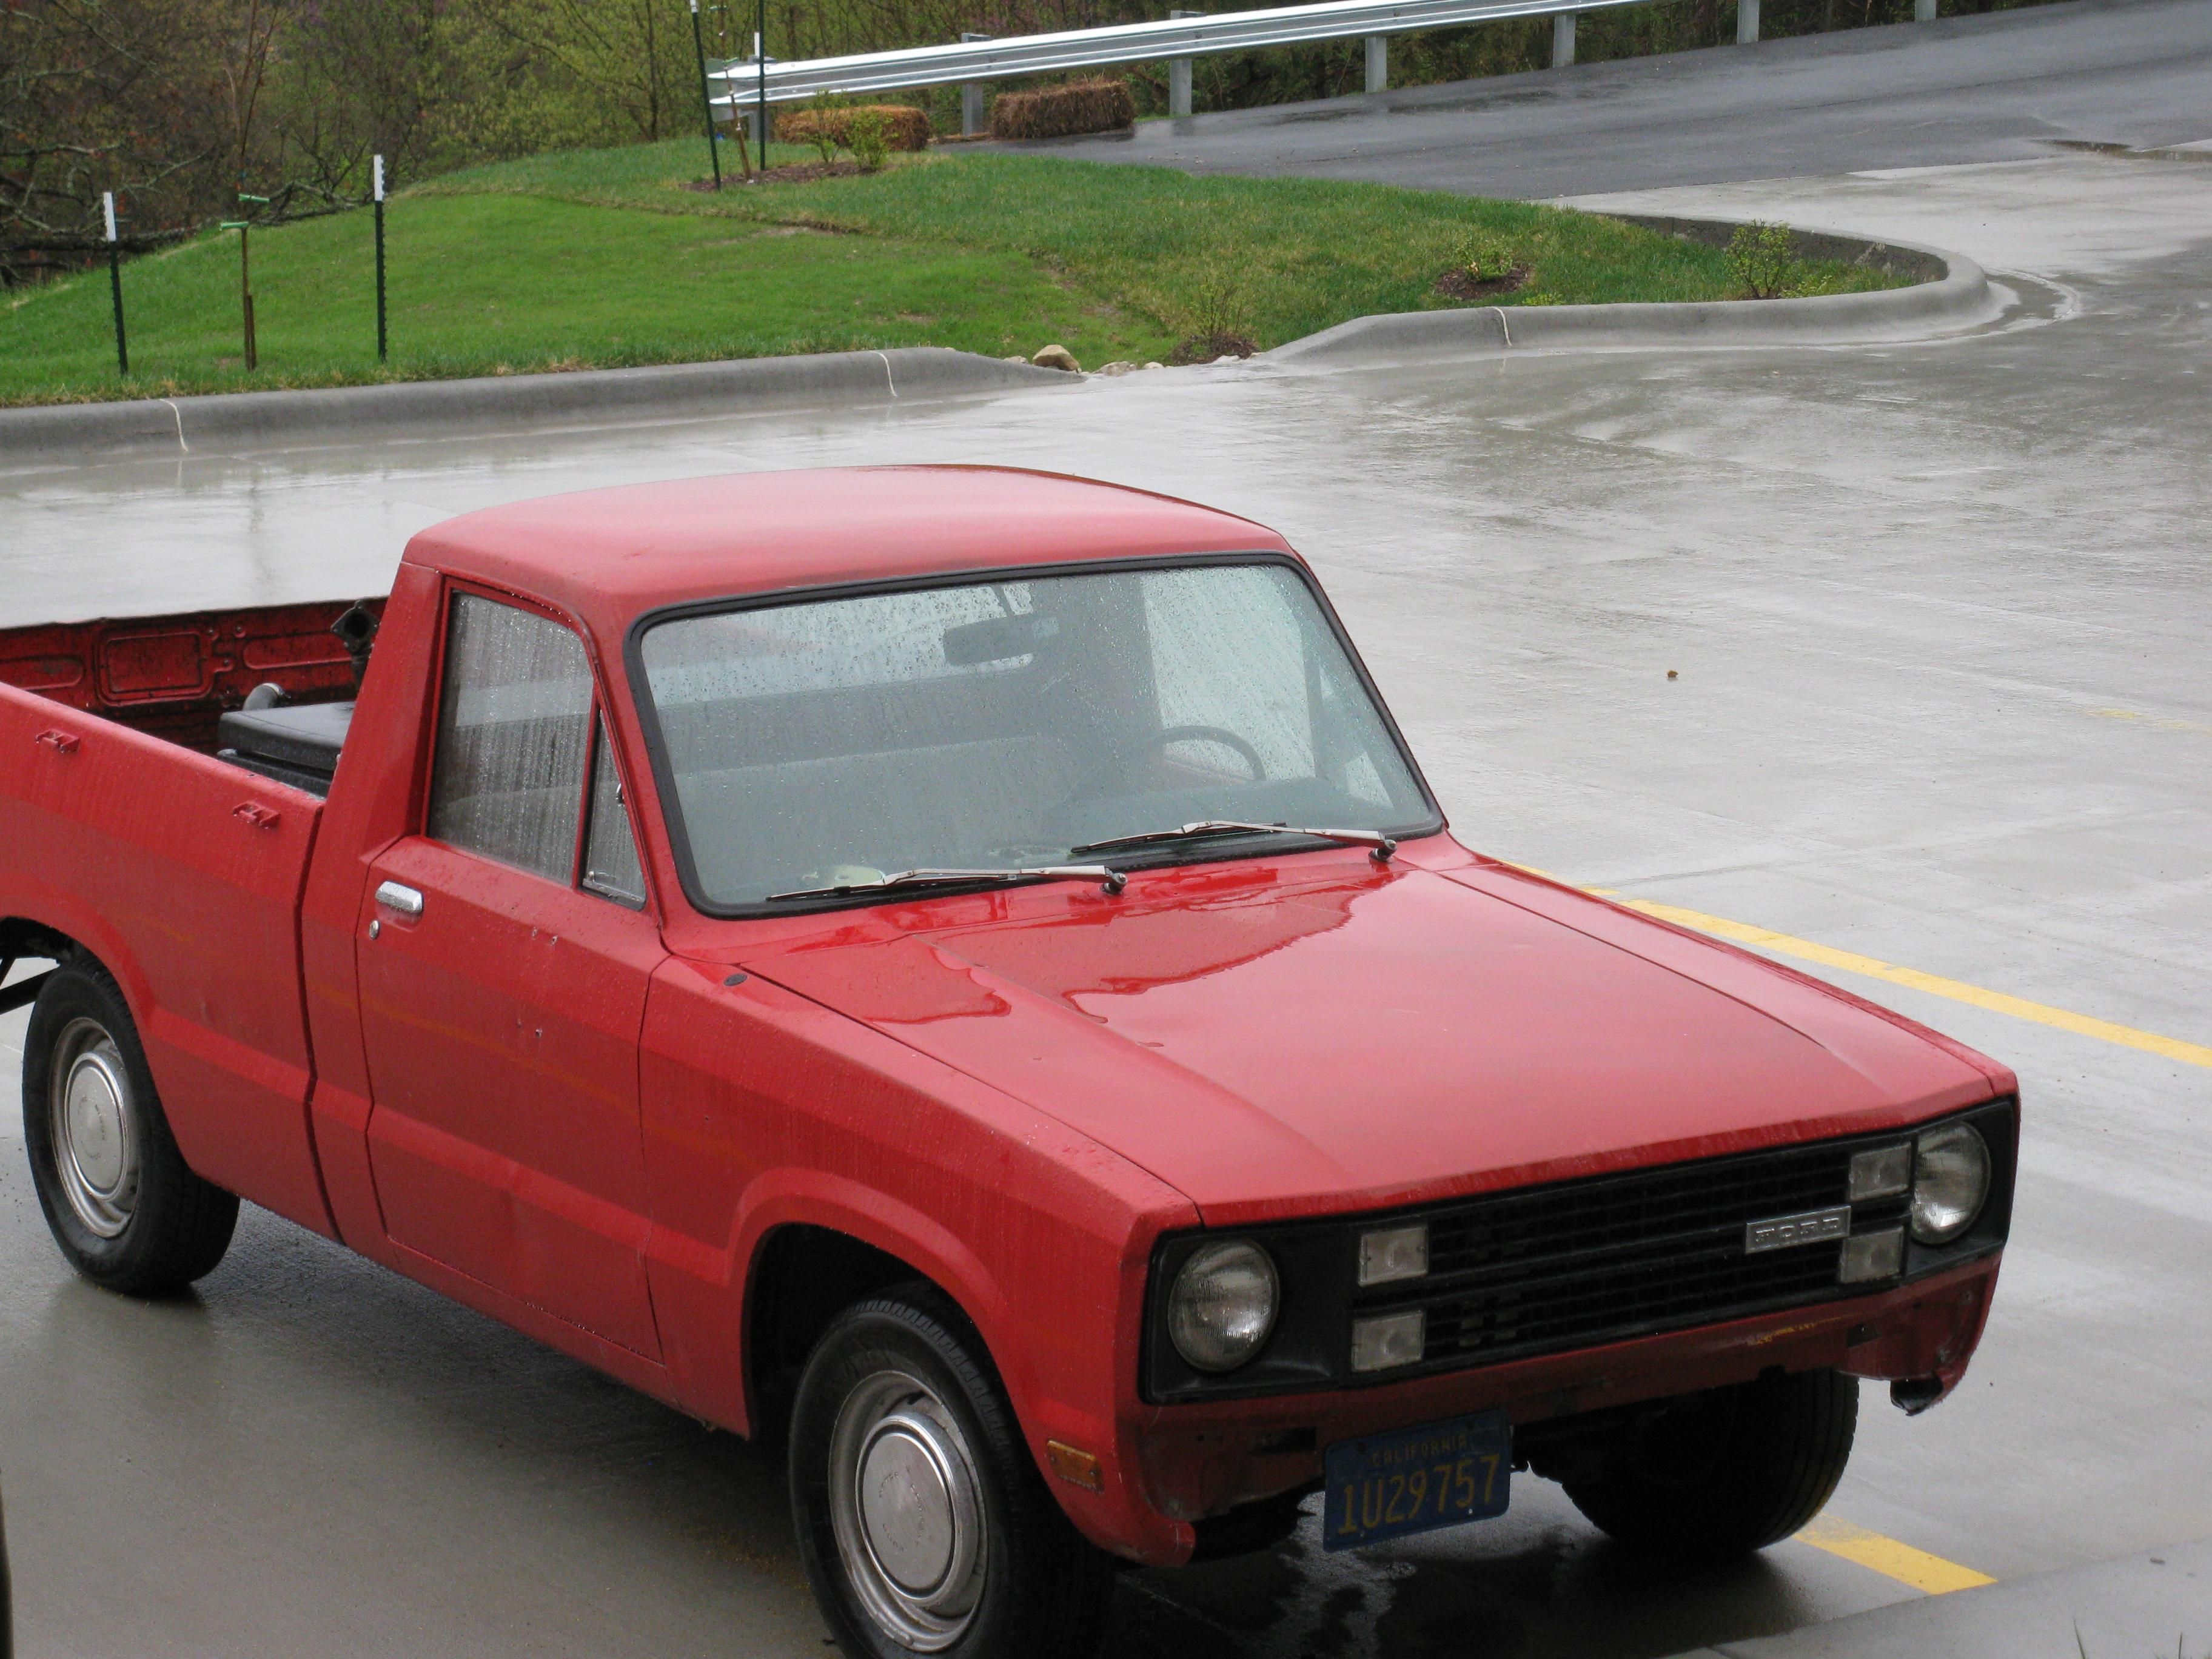 stook36 1976 Ford Courier Specs, Photos, Modification Info